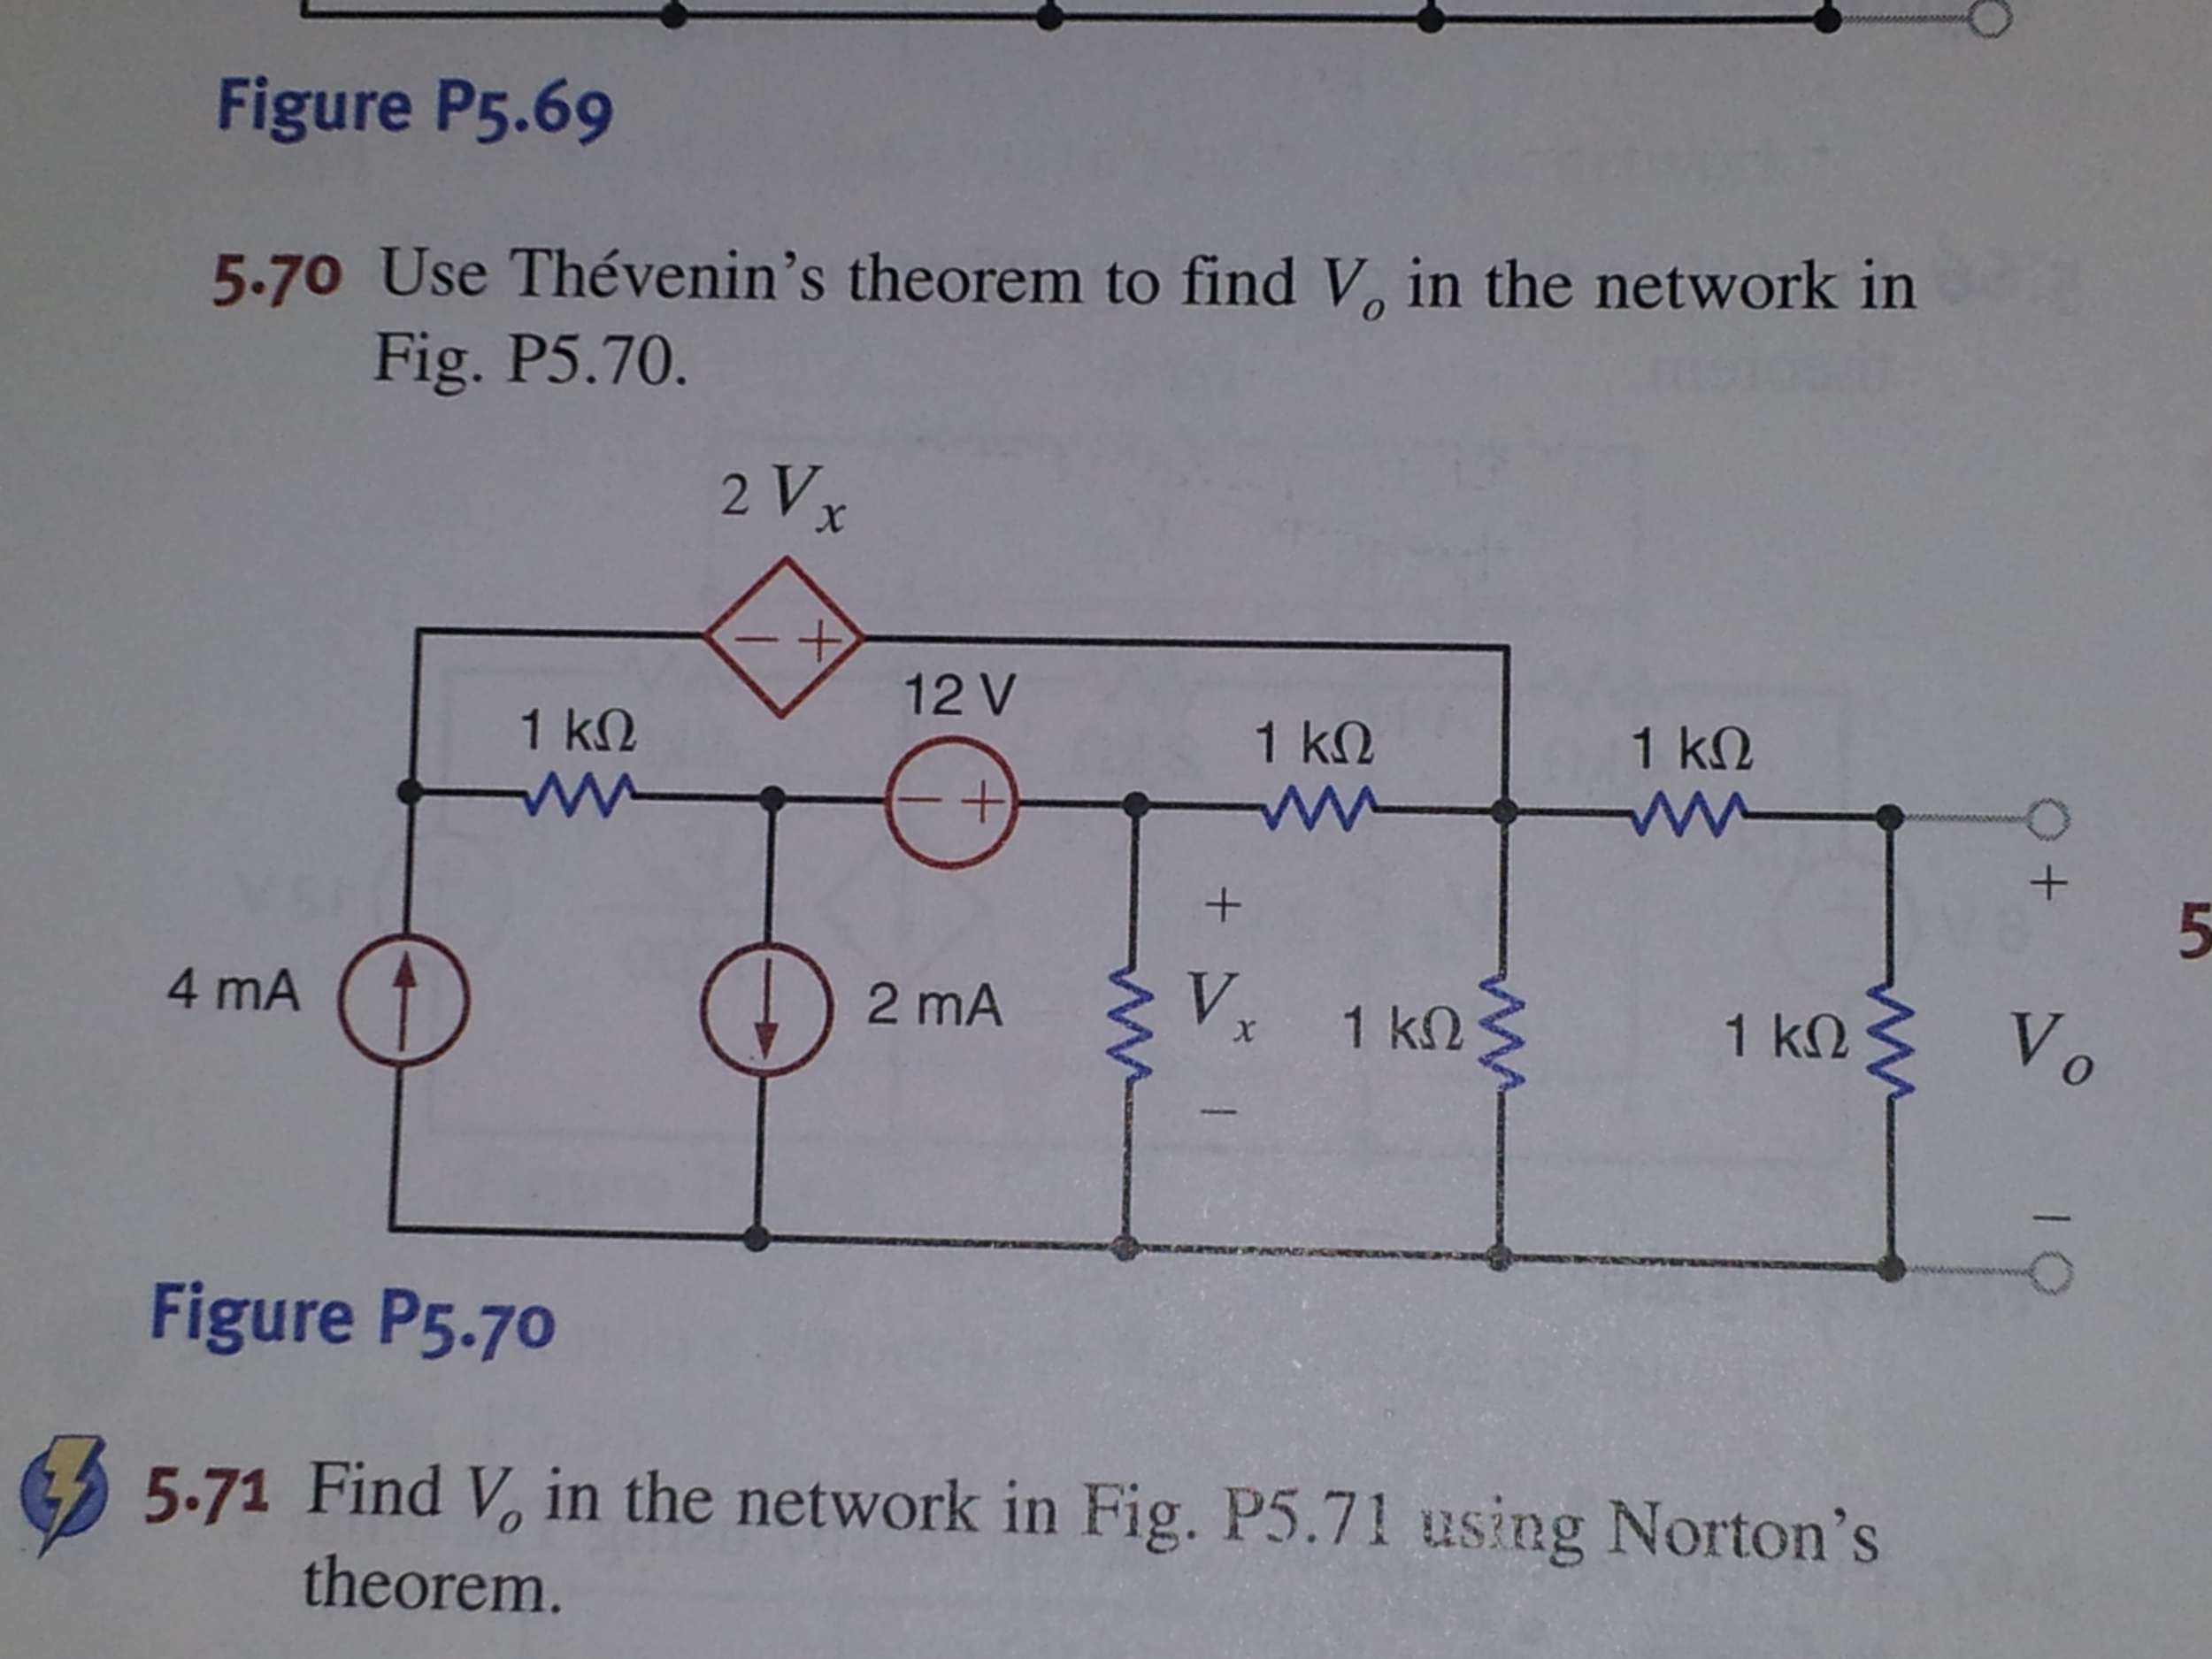 Figure P5.69 Use Thevenin's theorem to find V0 in